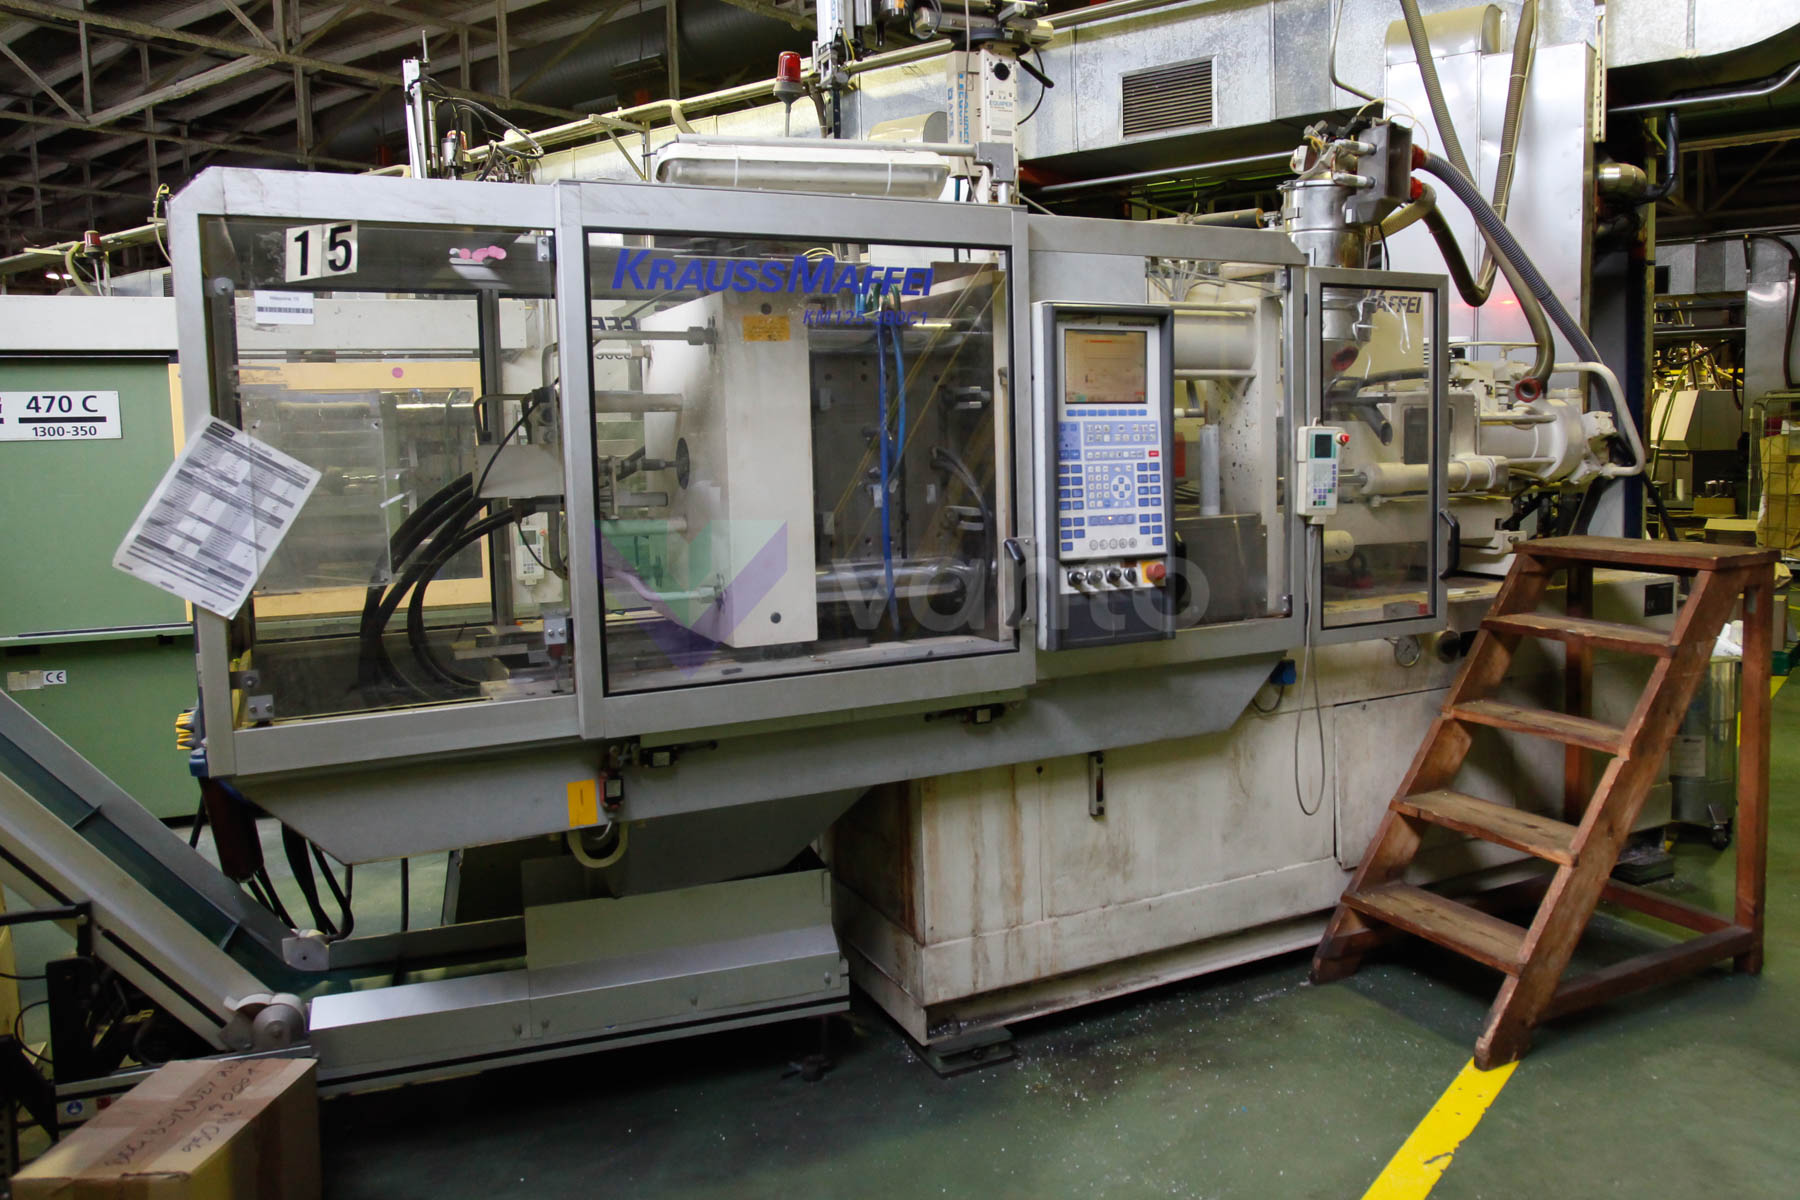 KRAUSS MAFFEI KM 125 - 390 CI 125t injection molding machine (1999) id4538